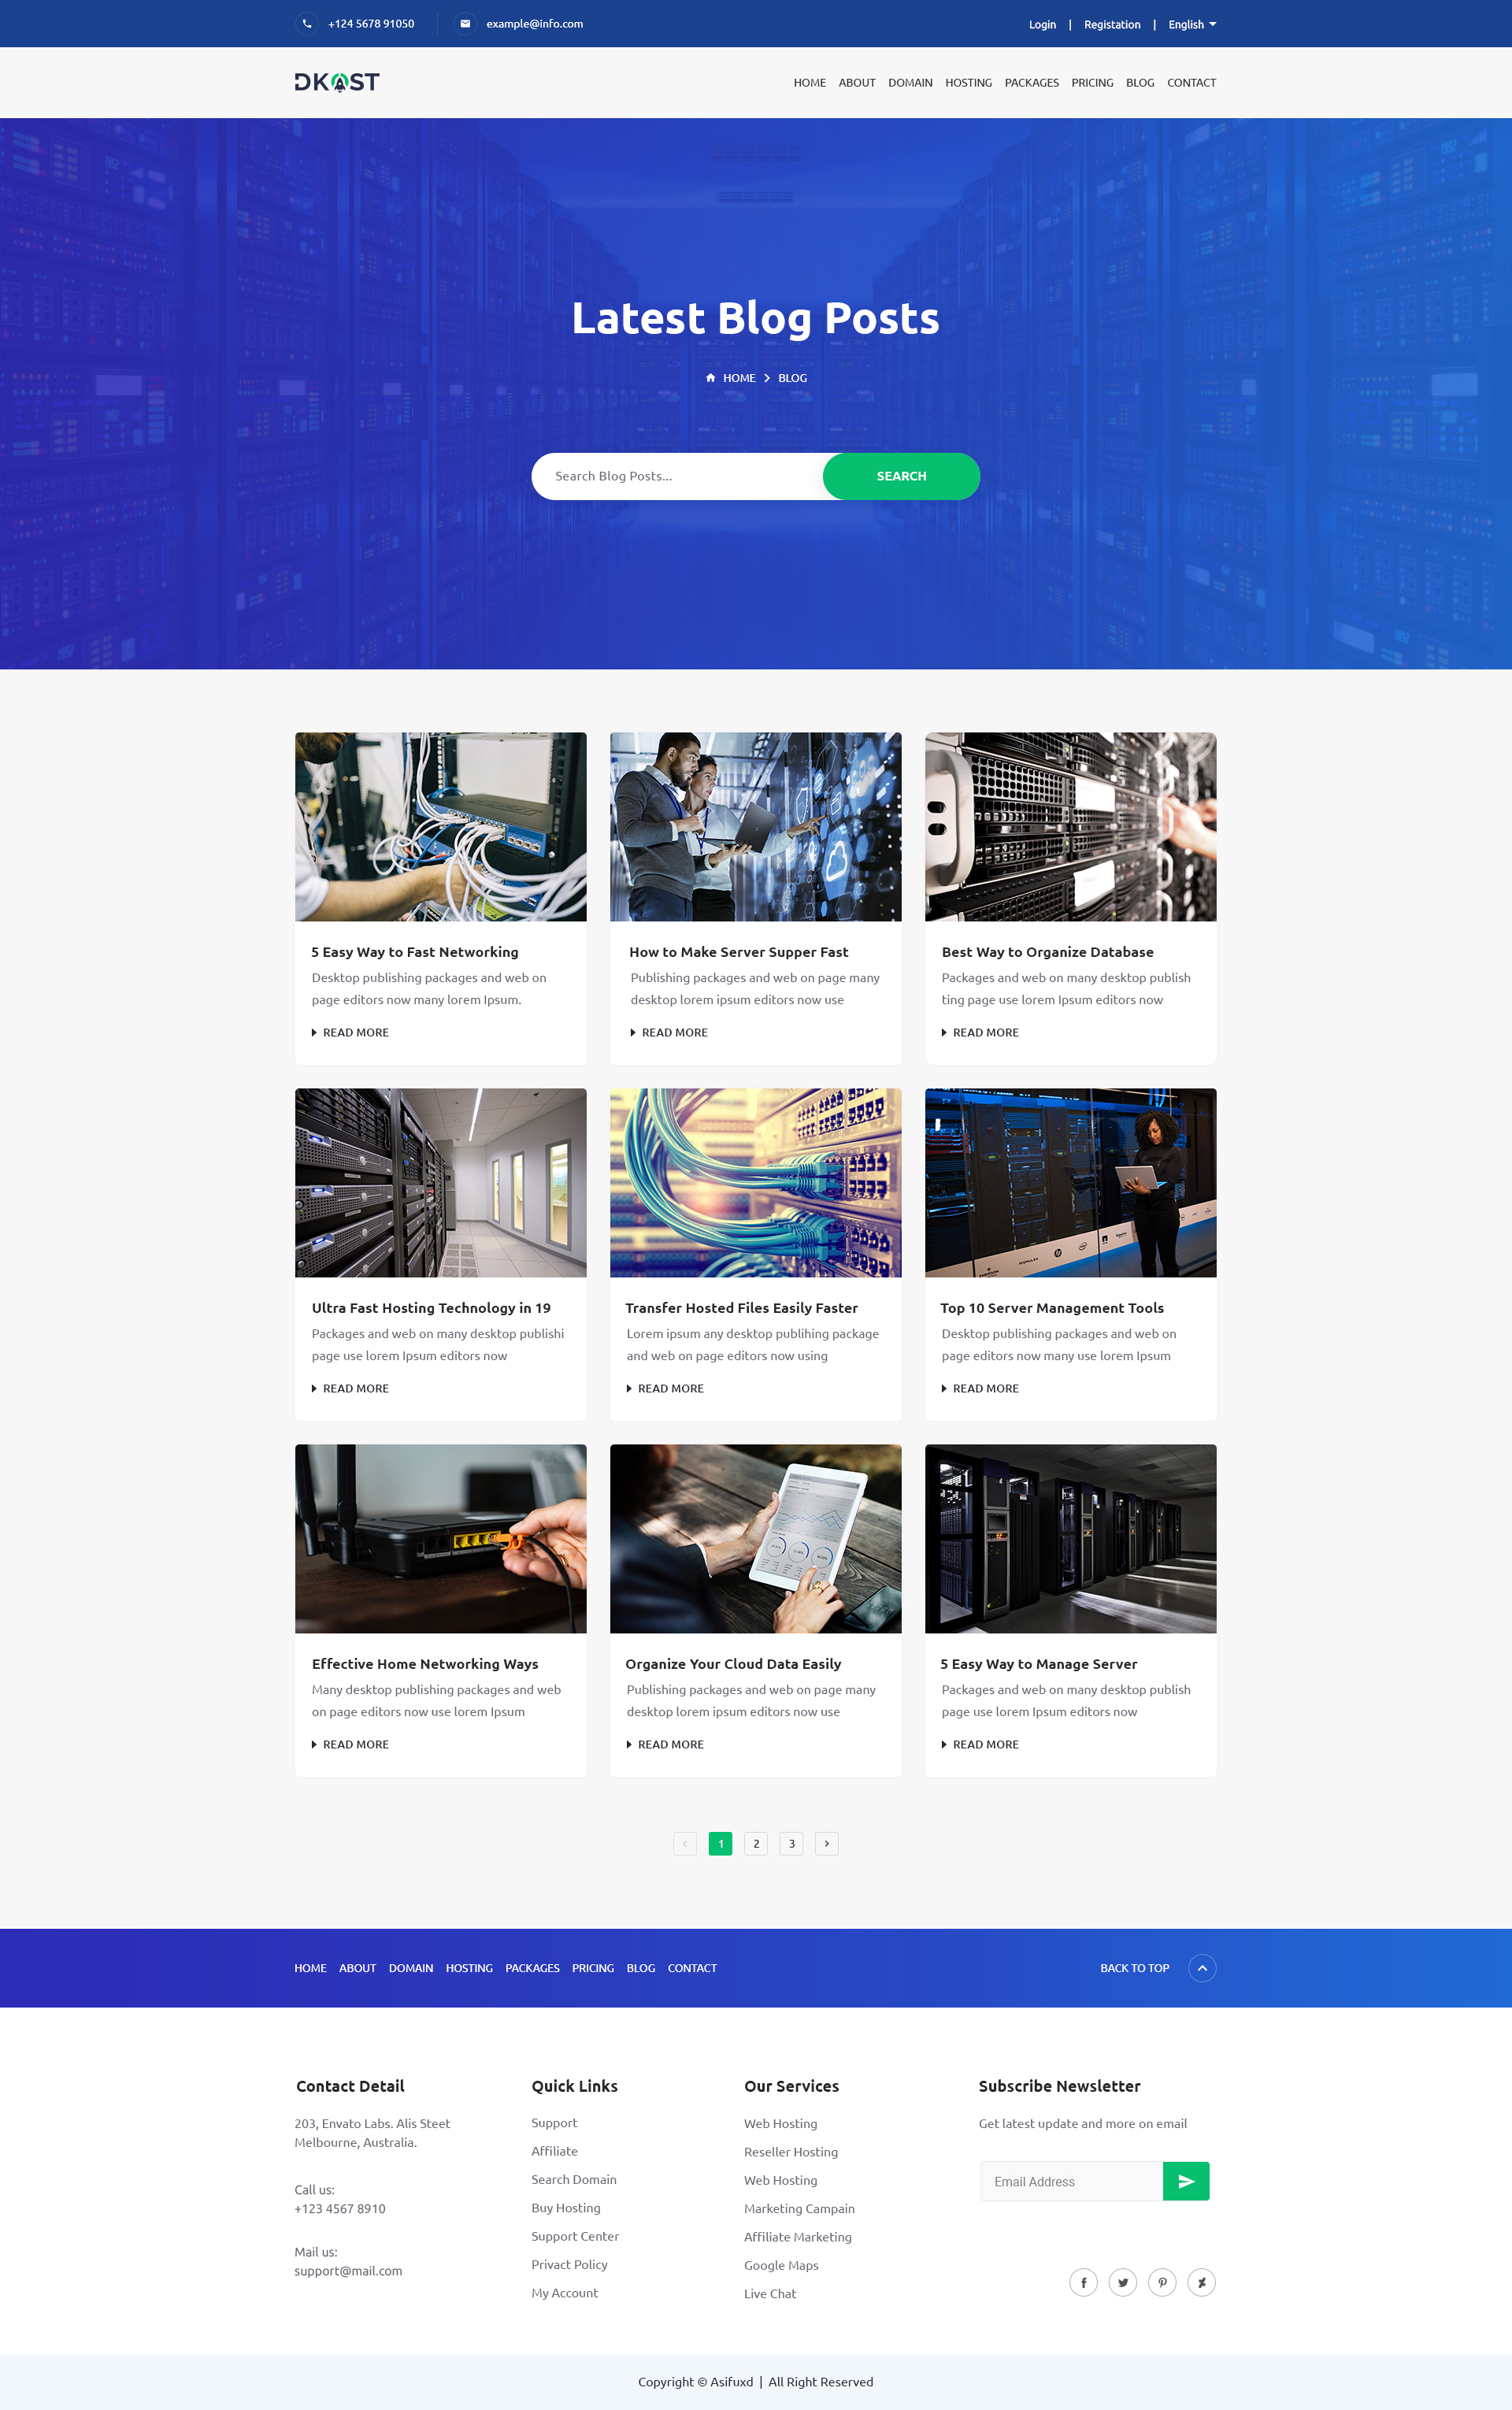 Dkost - Domain and Hosting PSD Template